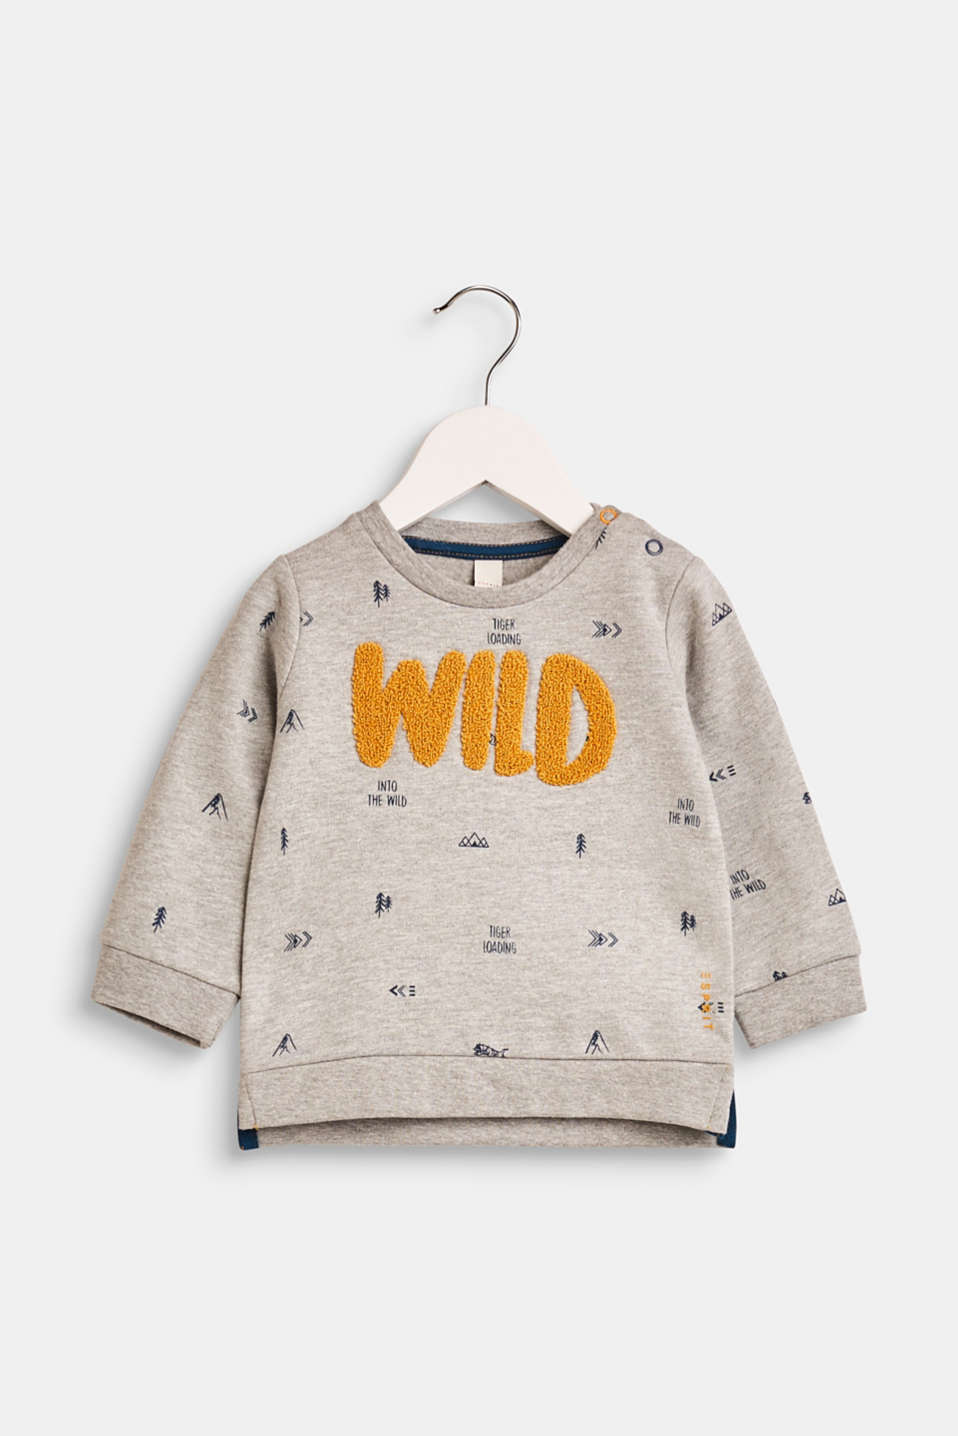 Esprit - Sweatshirt with a mini print and embroidery